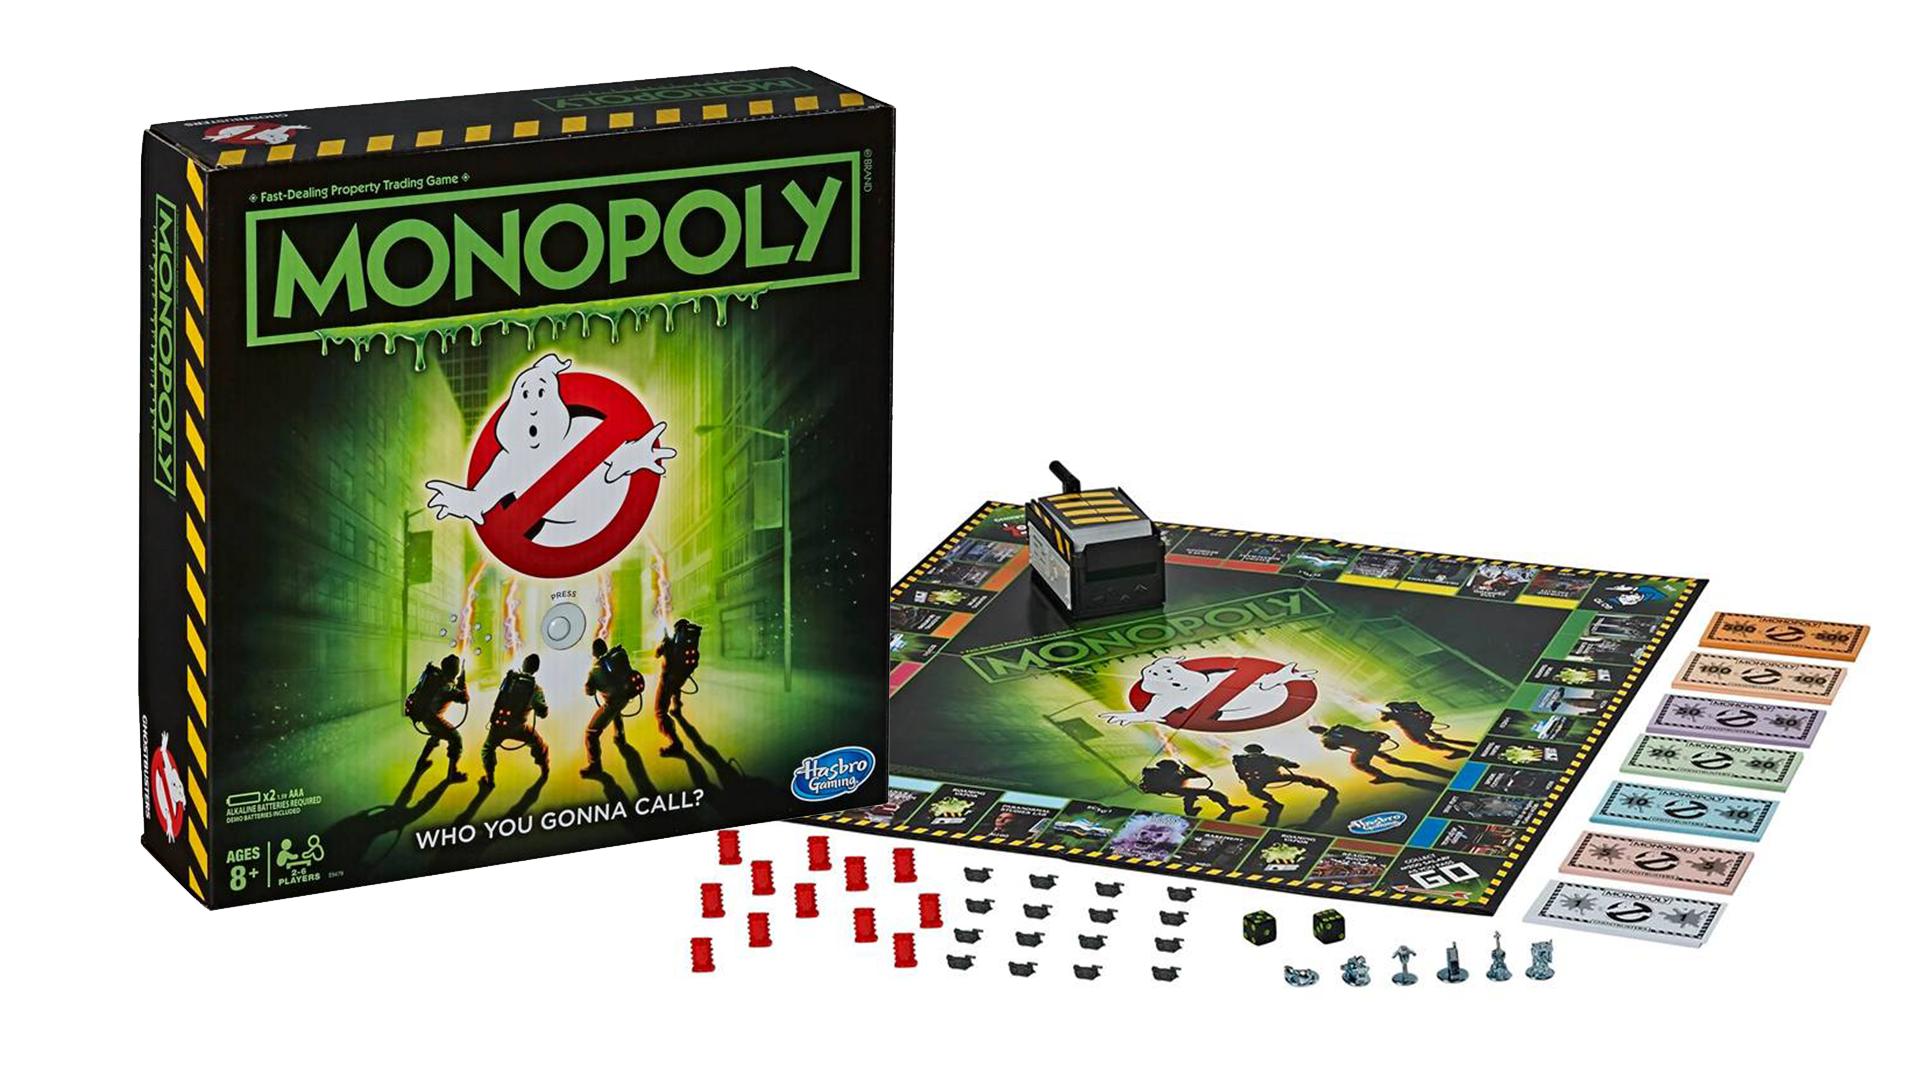 In arrivo un Monopoly a tema Ghostbusters